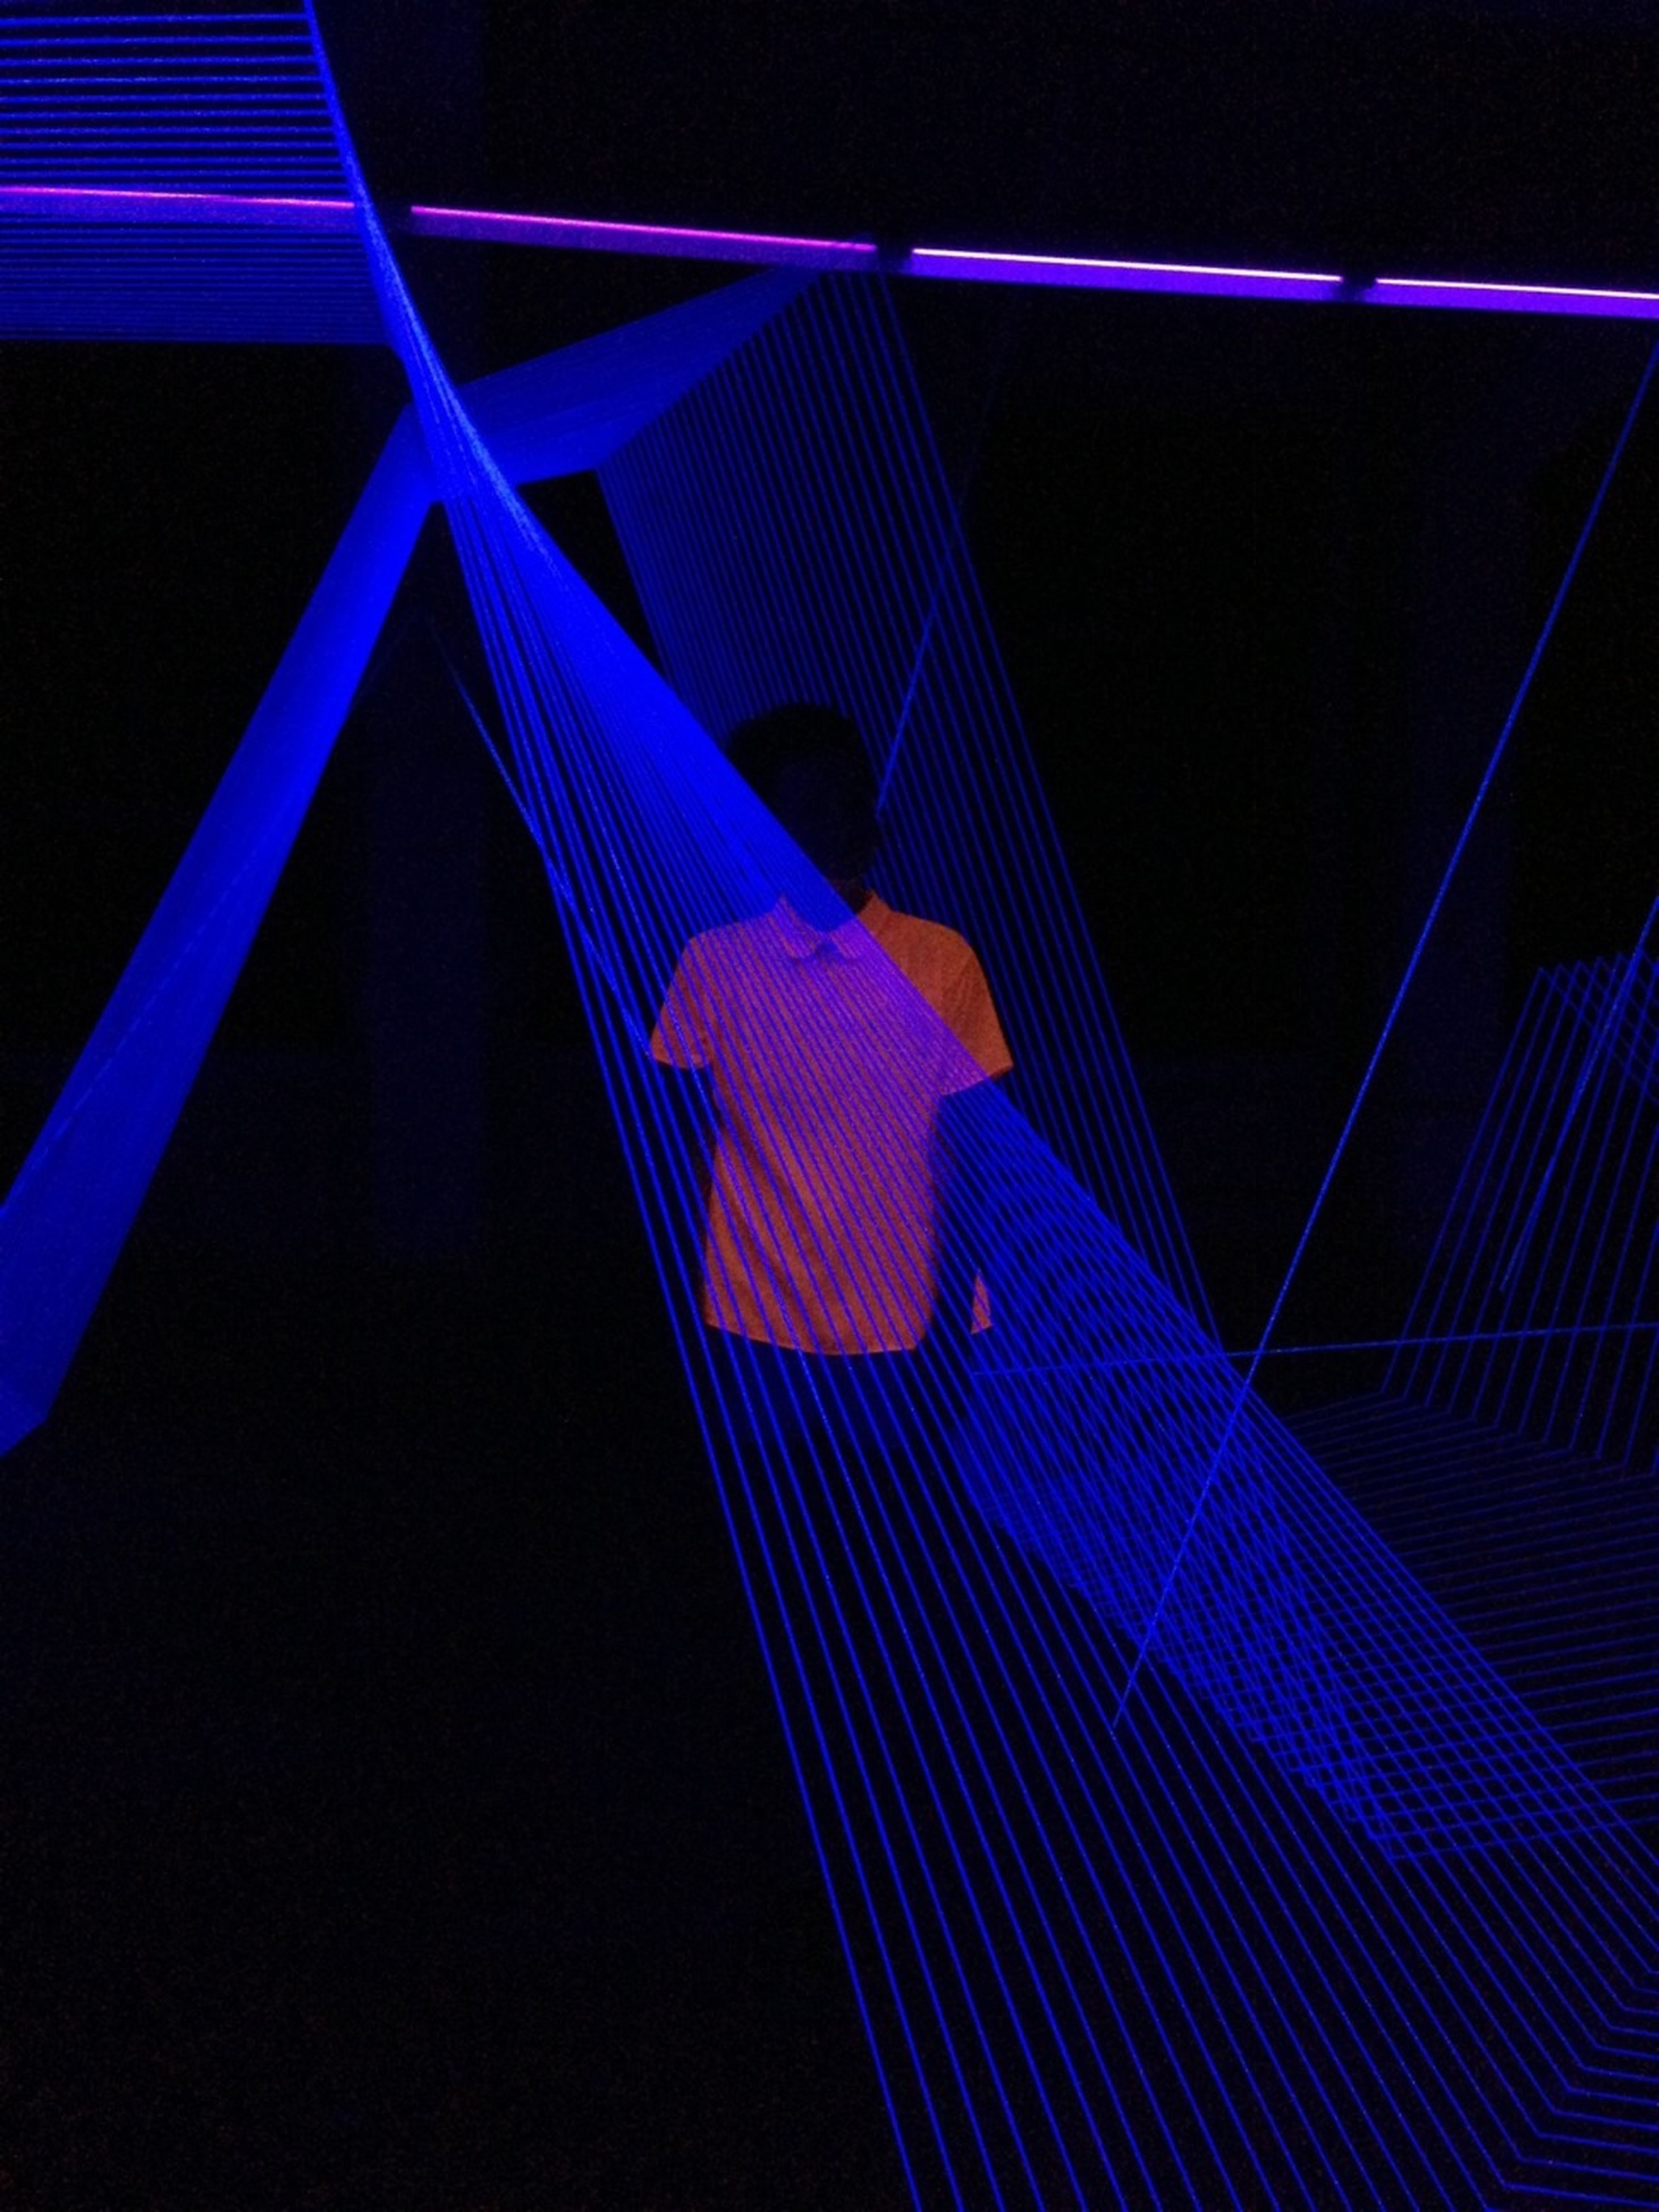 illuminated, night, blue, low angle view, lighting equipment, arts culture and entertainment, pattern, metal, light - natural phenomenon, multi colored, indoors, built structure, no people, railing, connection, copy space, electricity, modern, electric light